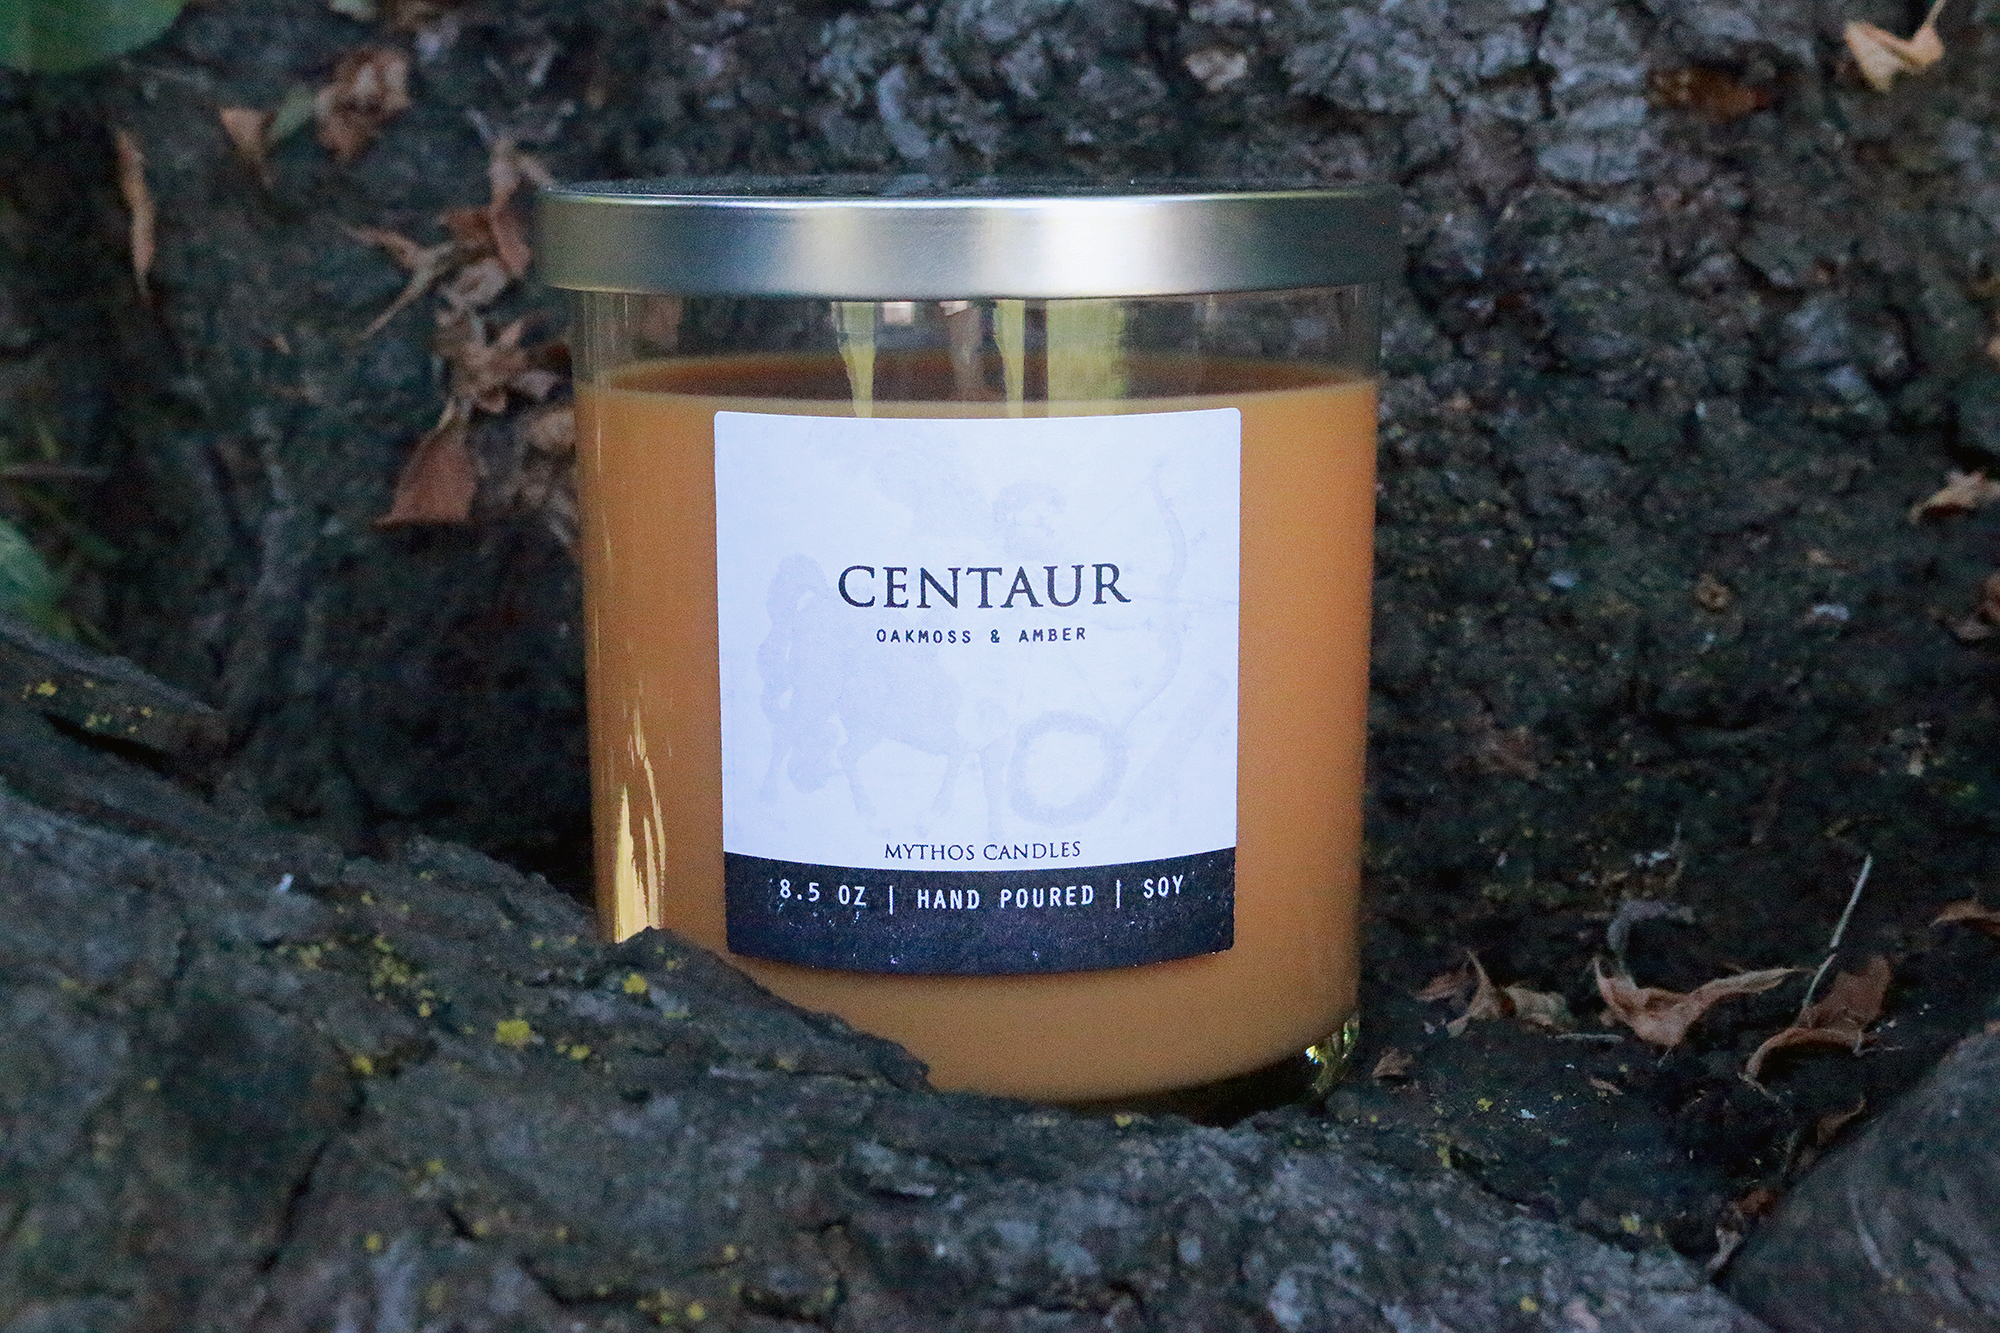 Mythos Candles 8.5oz Centaur (Oakmoss & Amber) Strong Scented Soy Candle